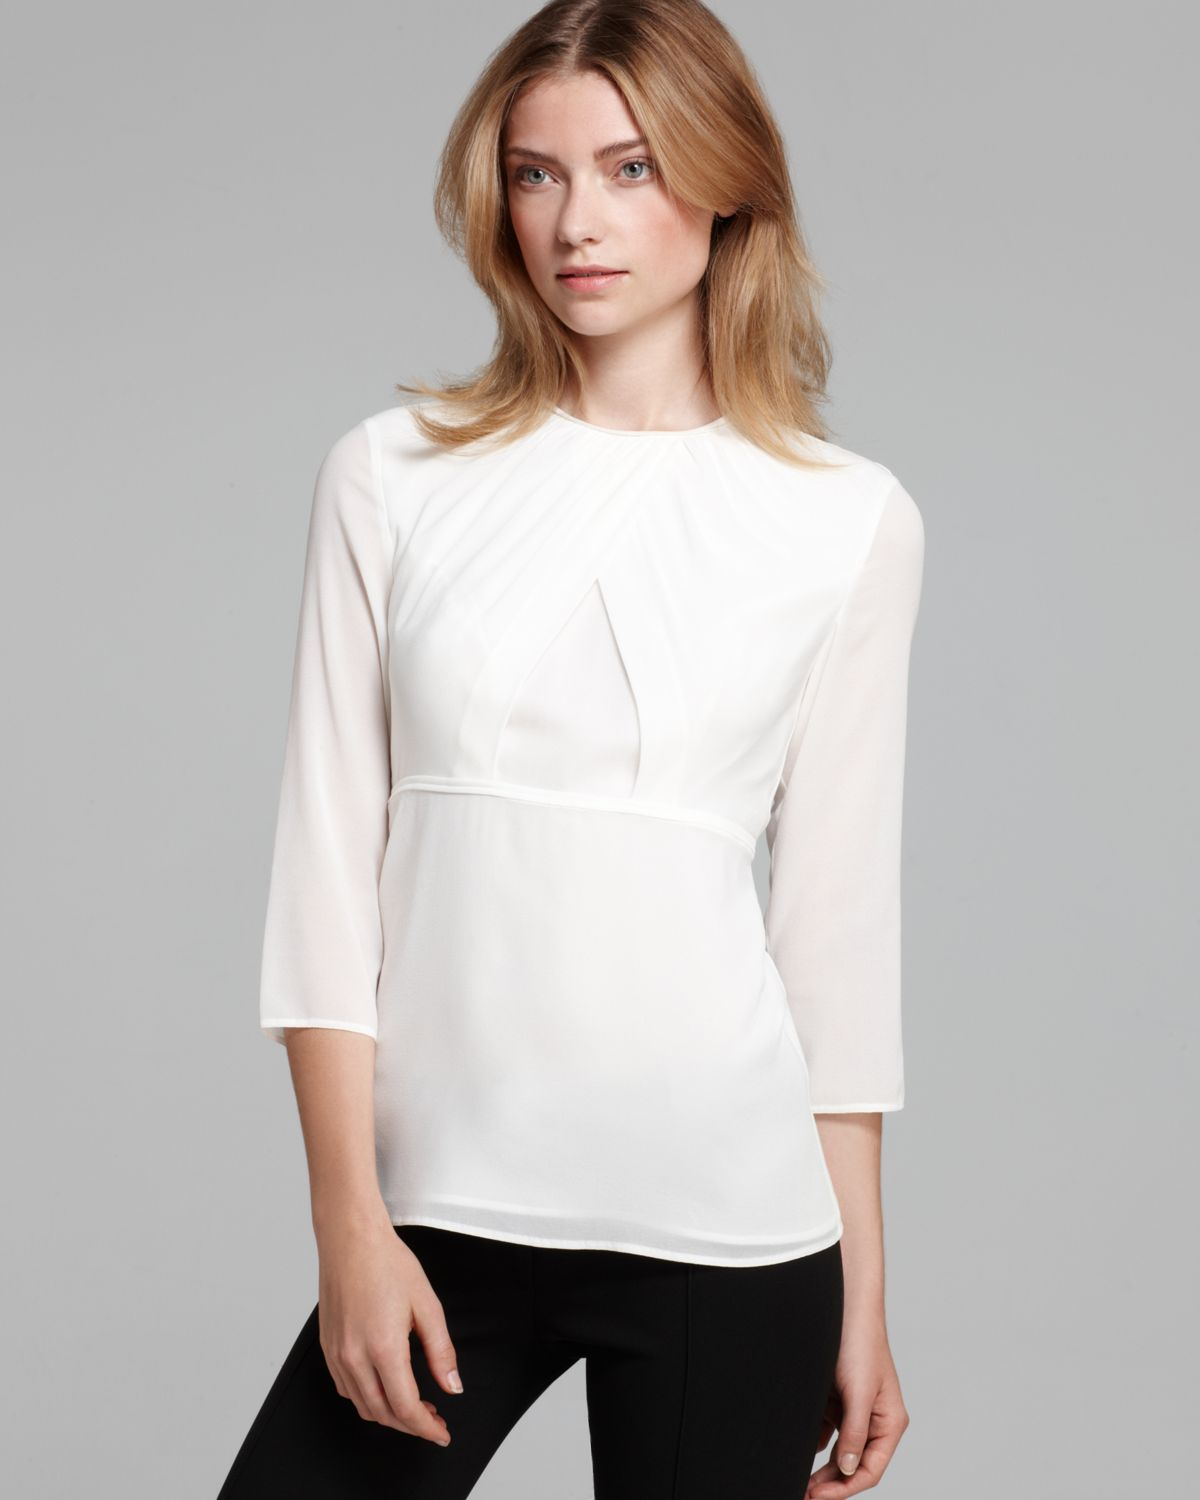 burberry outlet online aysk  burberry blouse